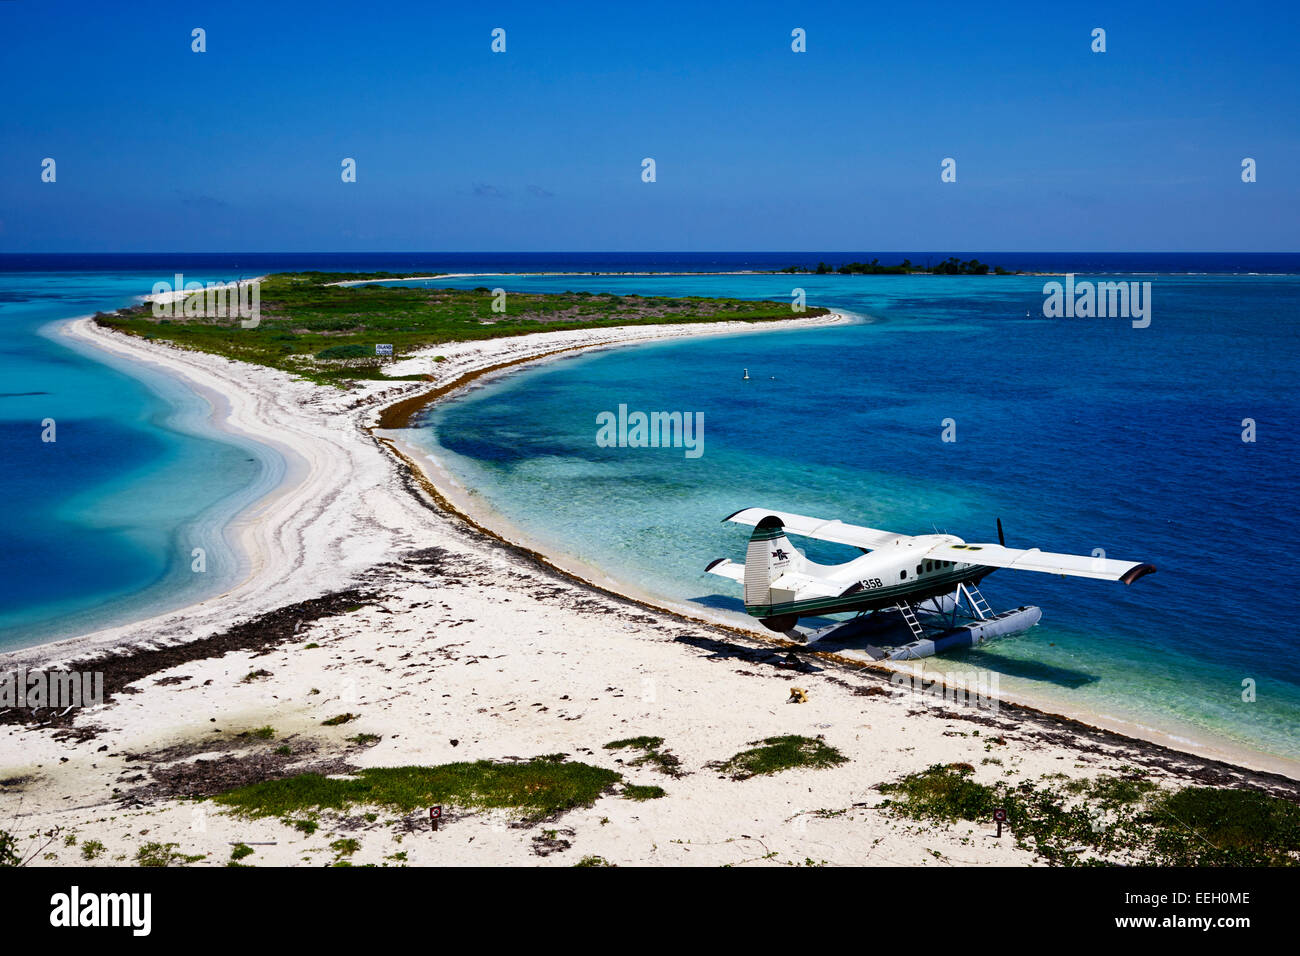 Hydravion DHC-3 Otter dehaviland sur la plage et bush touche à Dry Tortugas florida keys usa Photo Stock